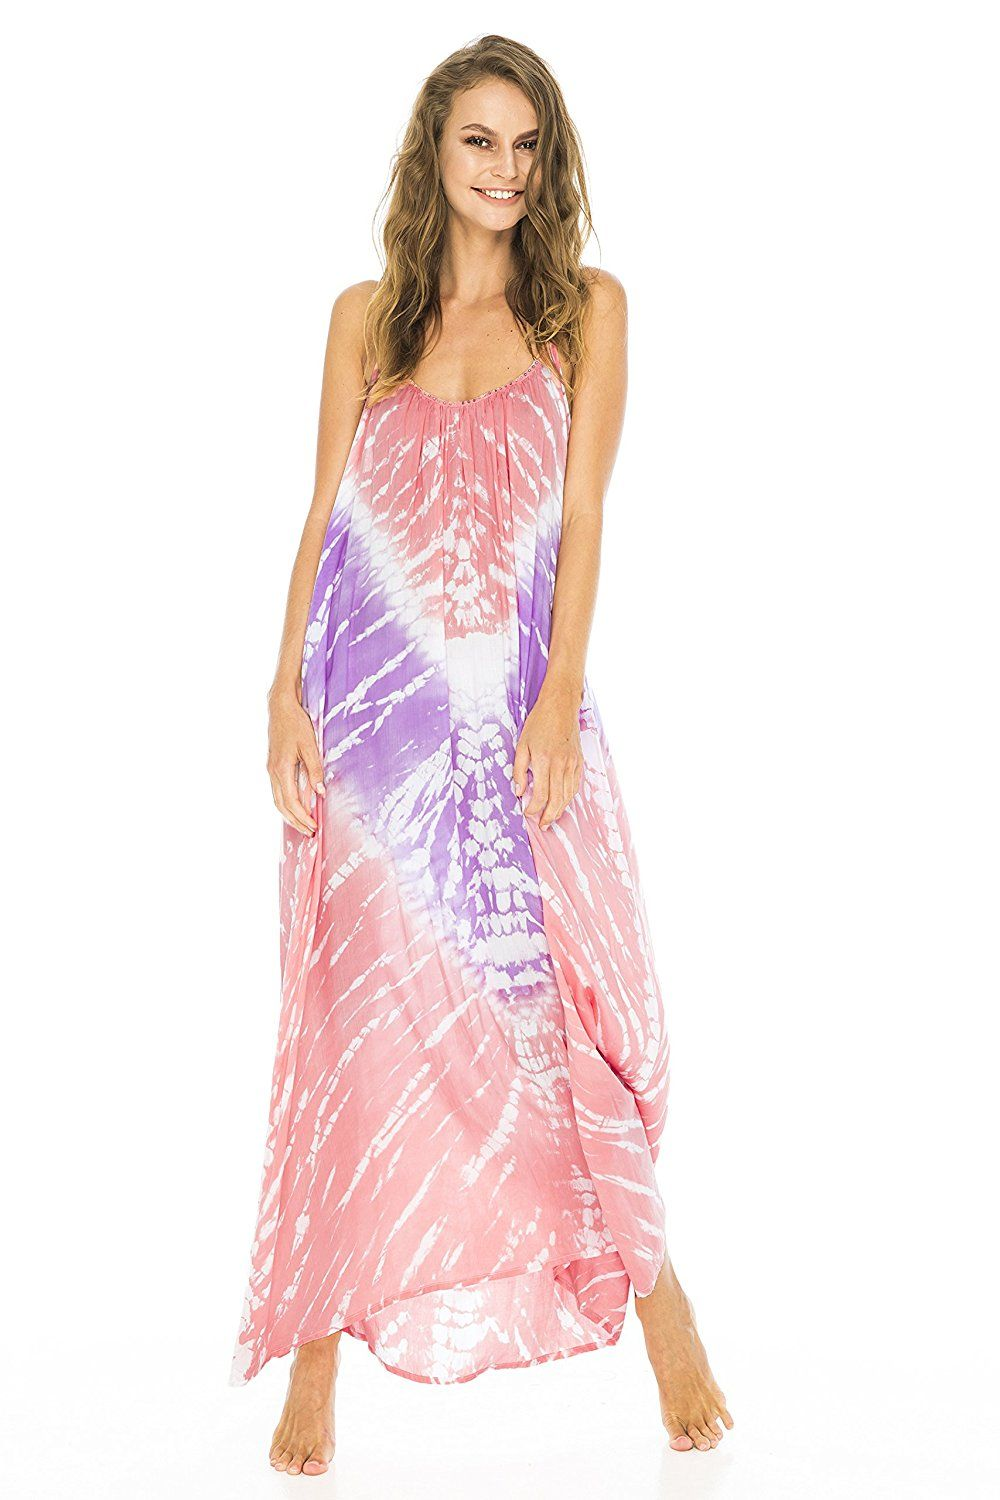 2013dff7cde4 Back From Bali Womens Maxi Summer Dress Sleeveless Tie Dye Pastel with  Beading * Find out more details by clicking the image : homecoming dresses